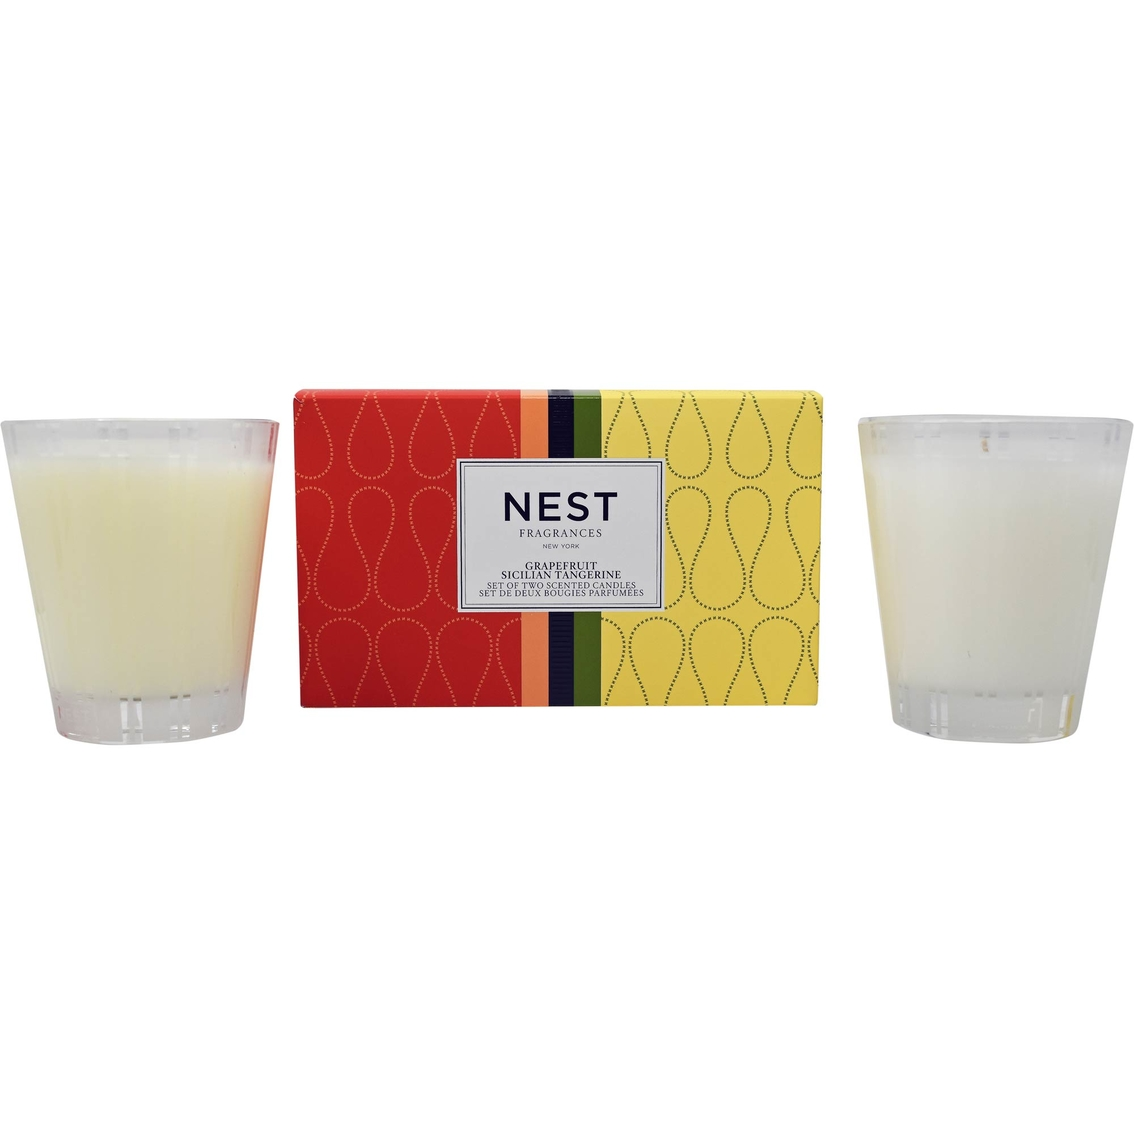 Nest Fragrances Classic Candle Duo Candles Home Fragrance Household Shop The Exchange